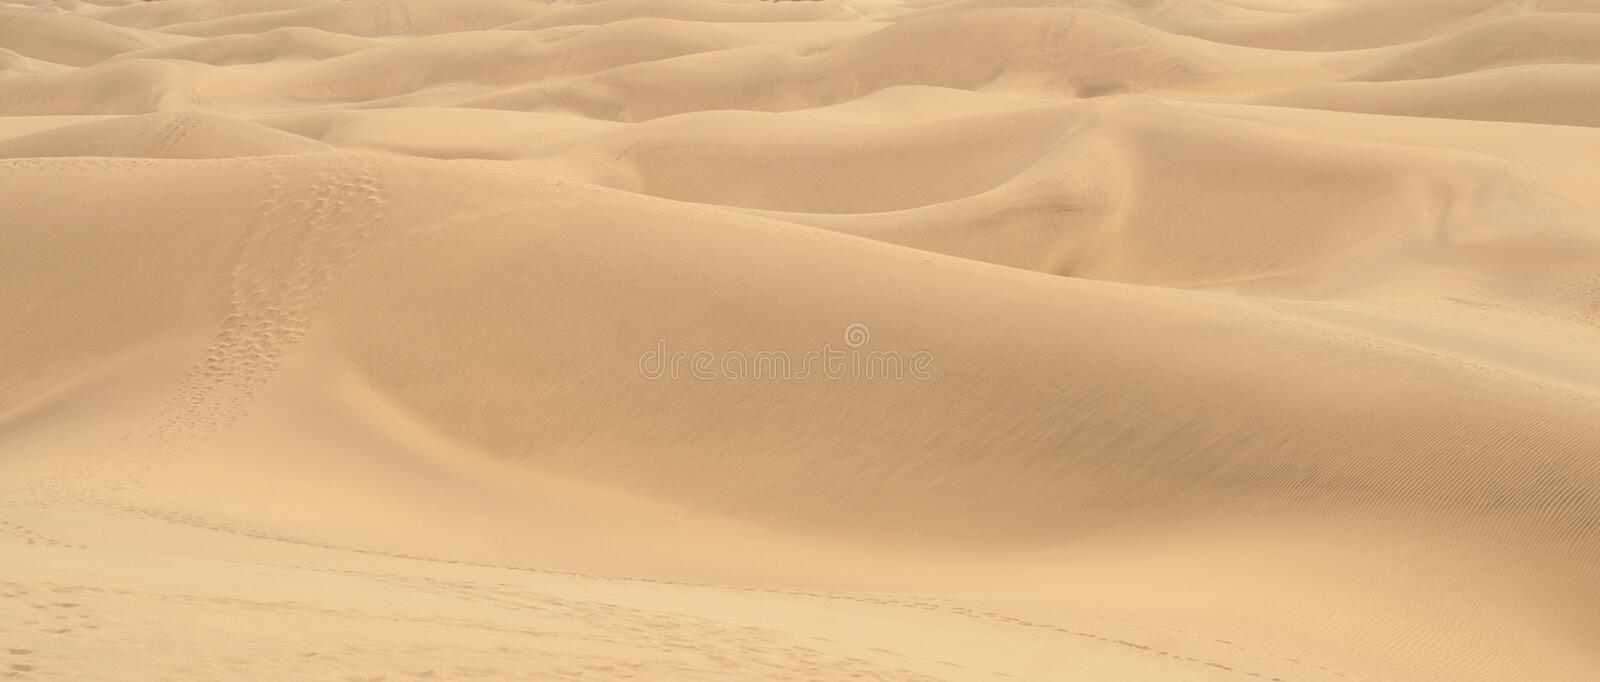 Beautiful landscape with dunes of Gran-Canaria, Canarian island royalty free stock photography